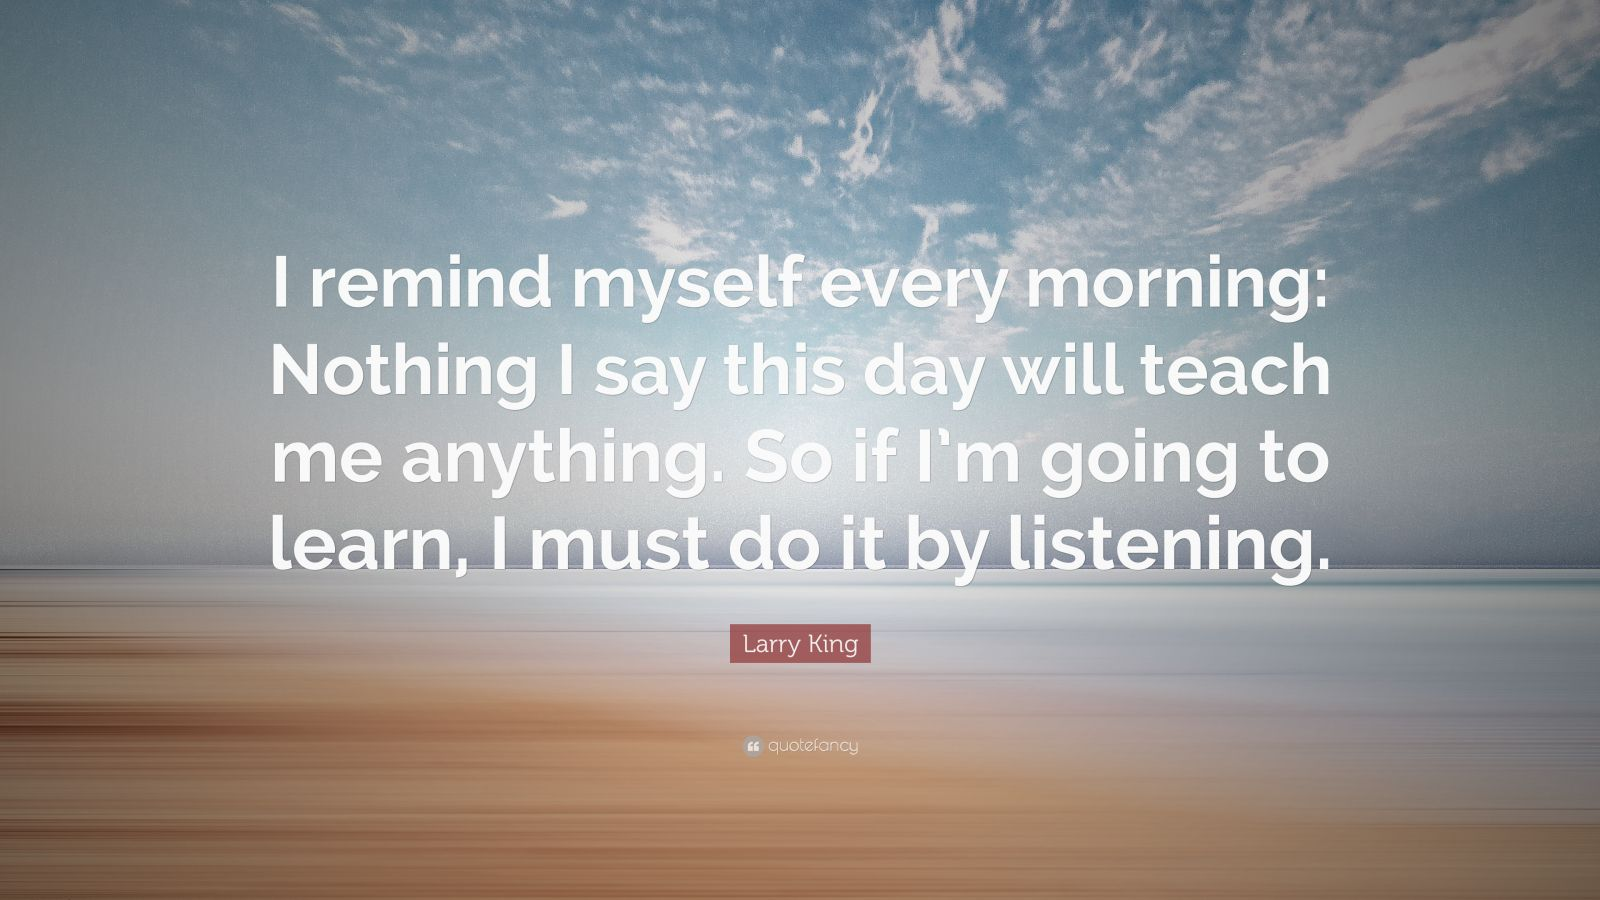 Larry King Quote I Remind Myself Every Morning Nothing I Say This Day Will Teach Me Anything